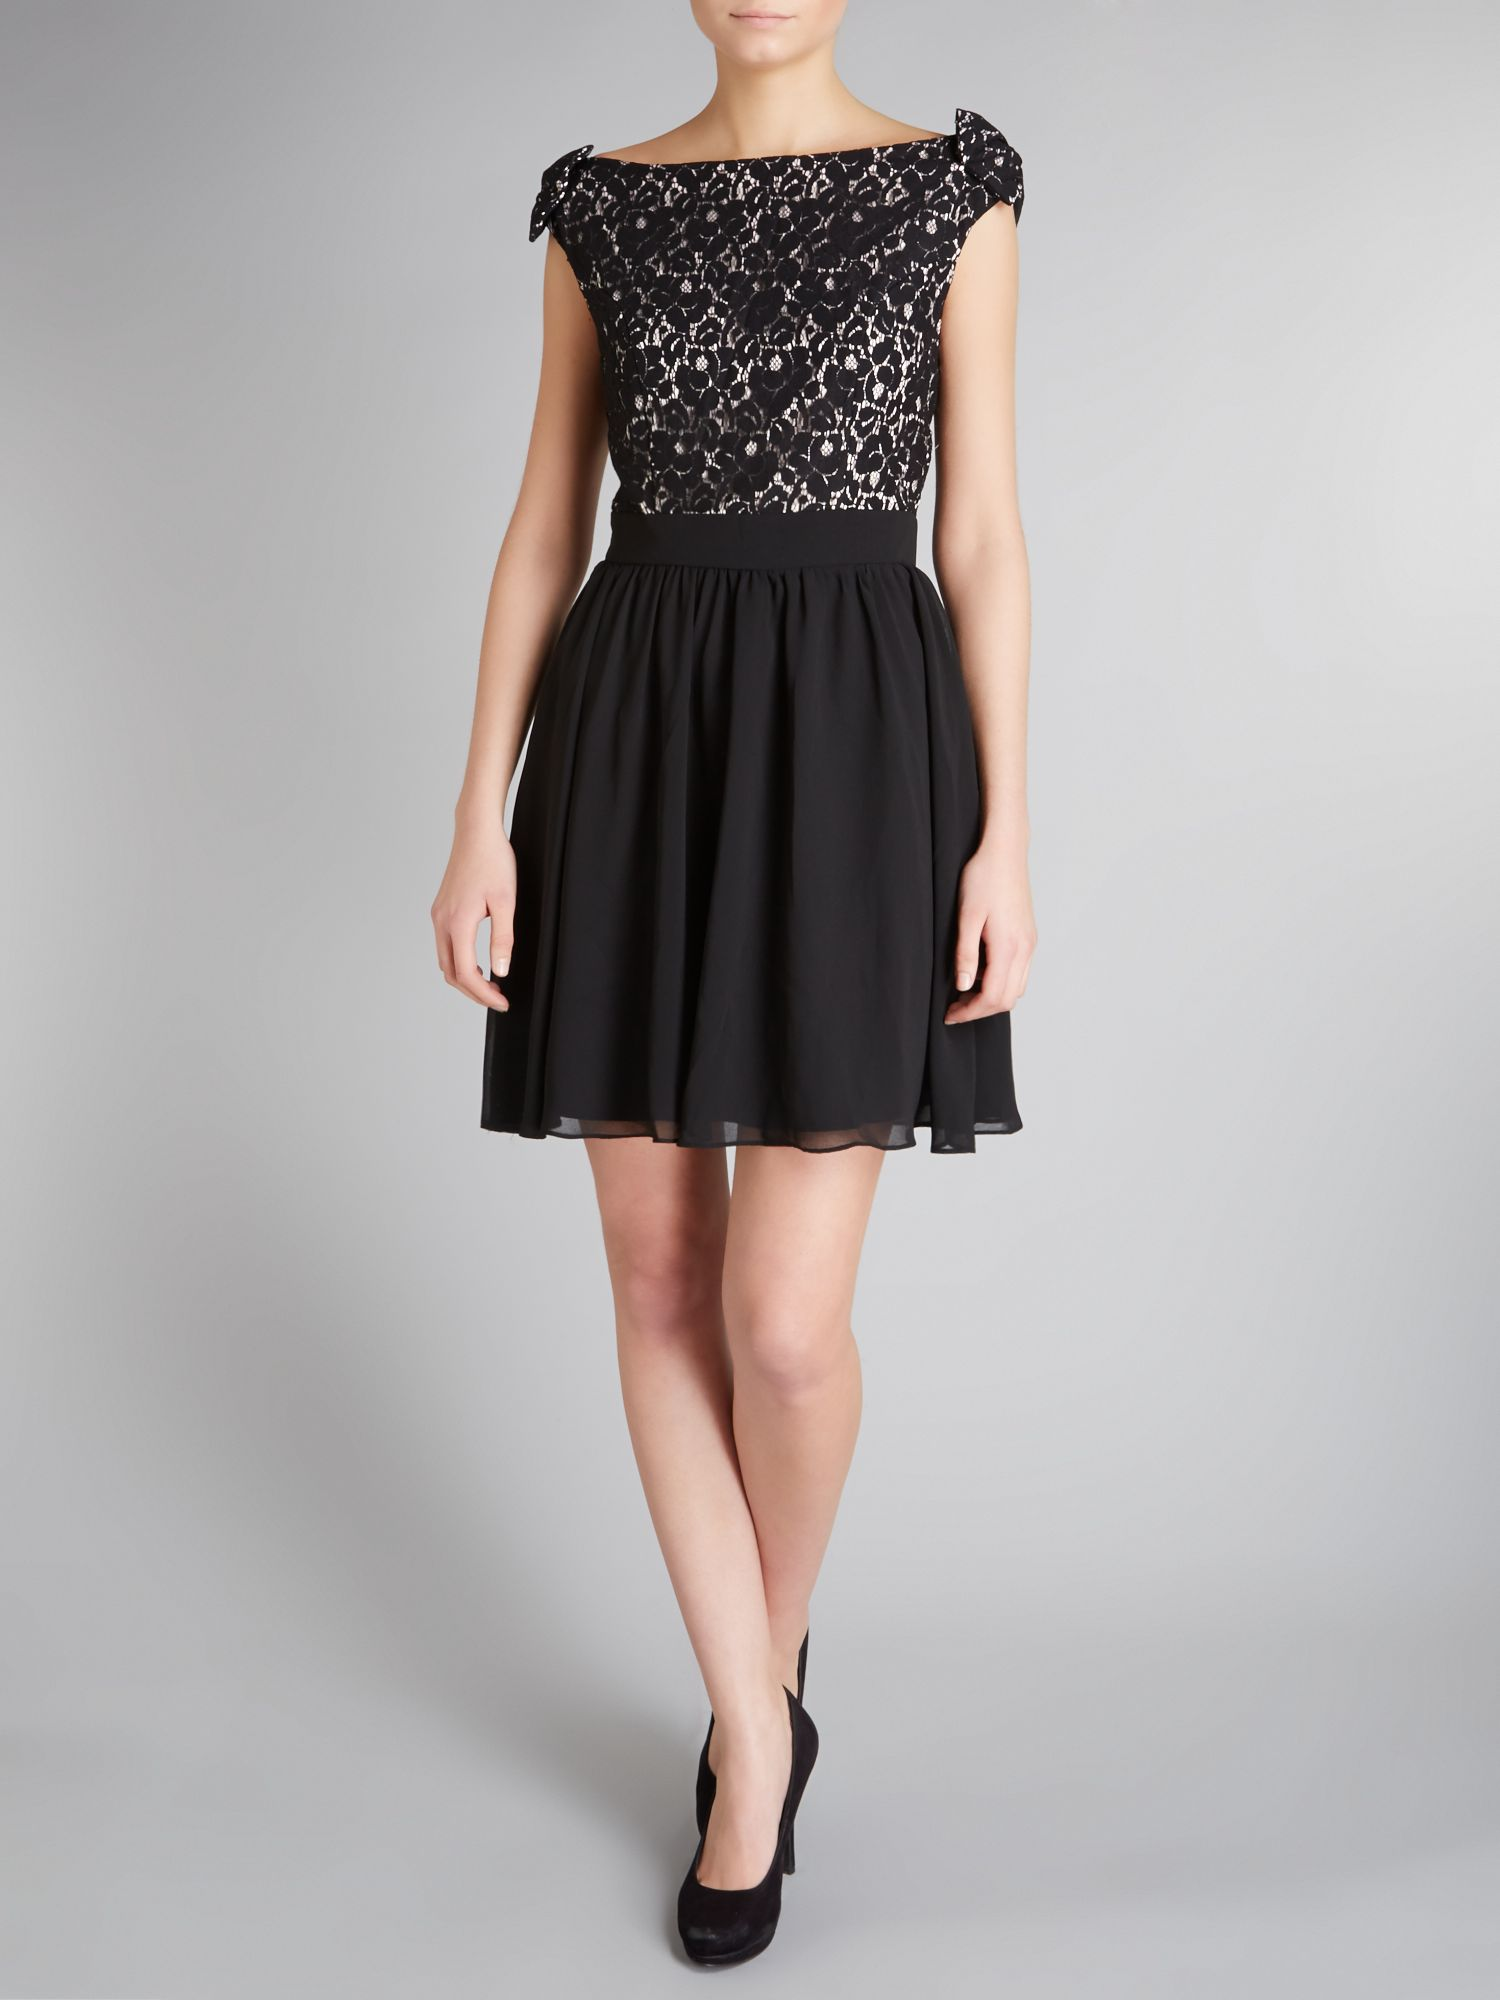 Lace cut out waist fit and flare dress